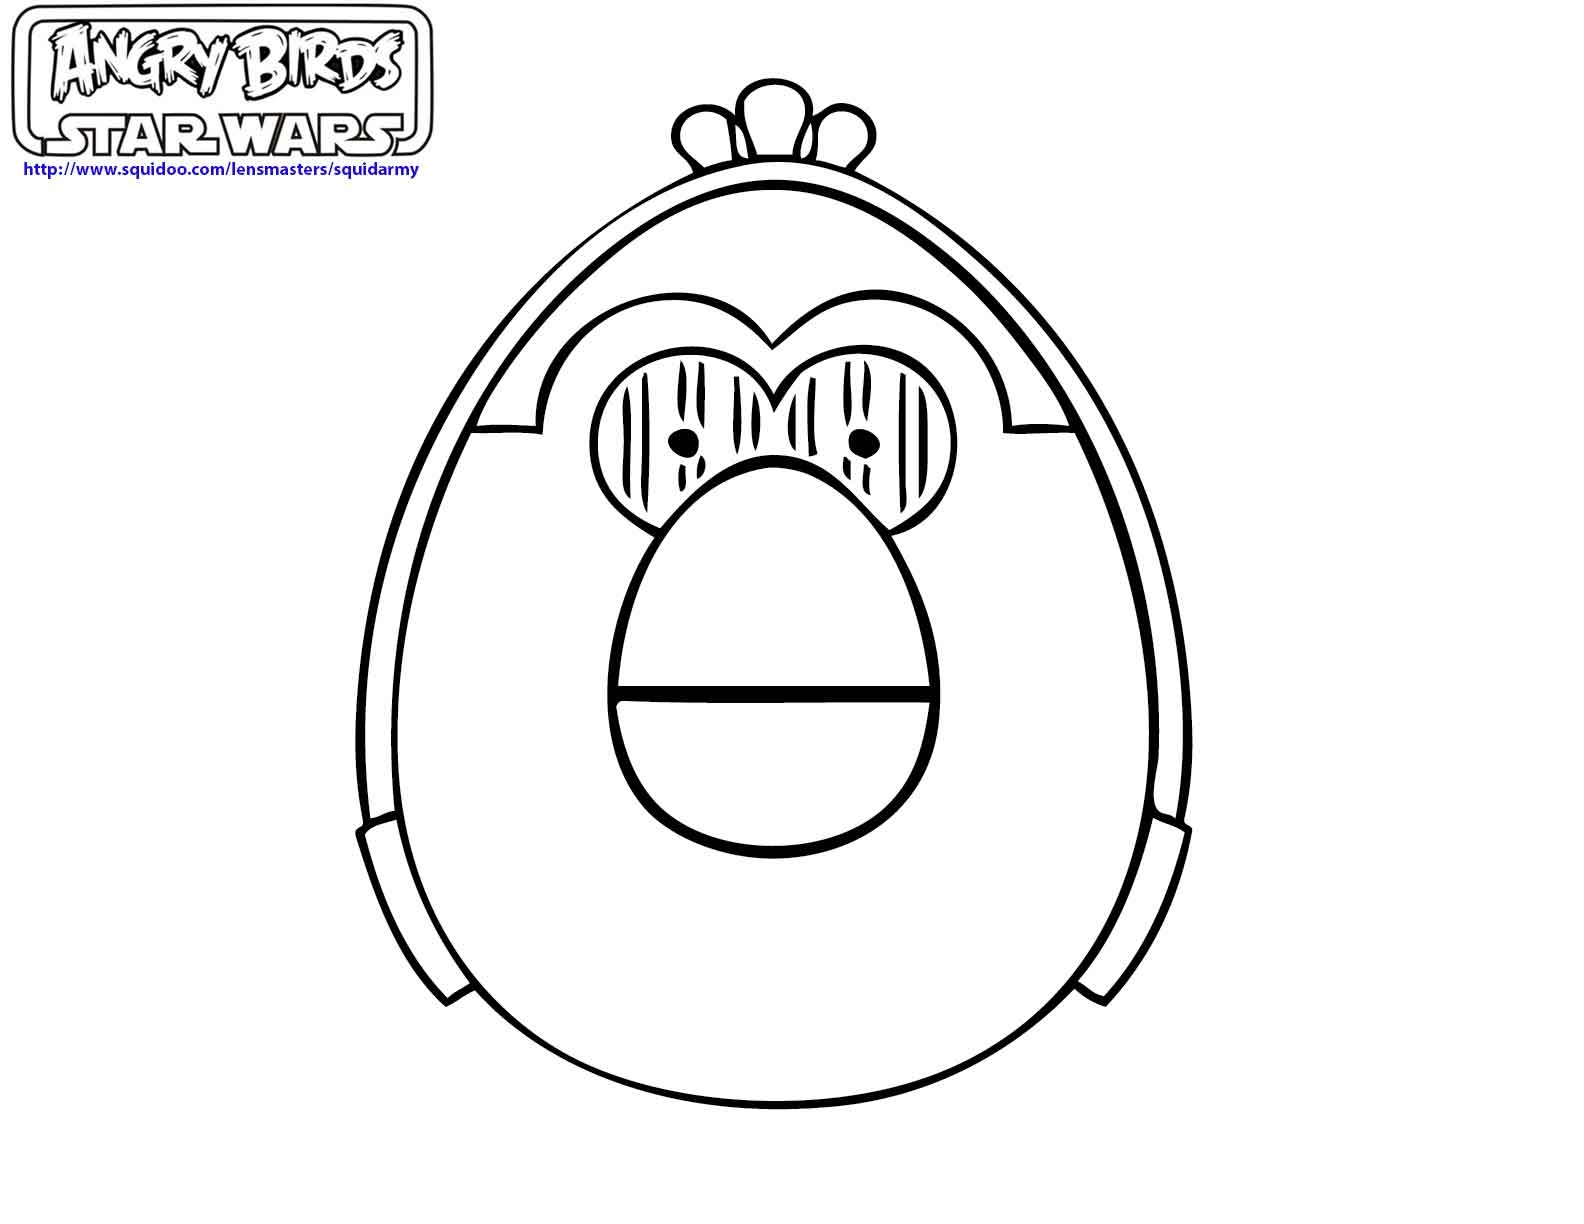 angry birds star wars coloring pages - angry birds coloring pages ii